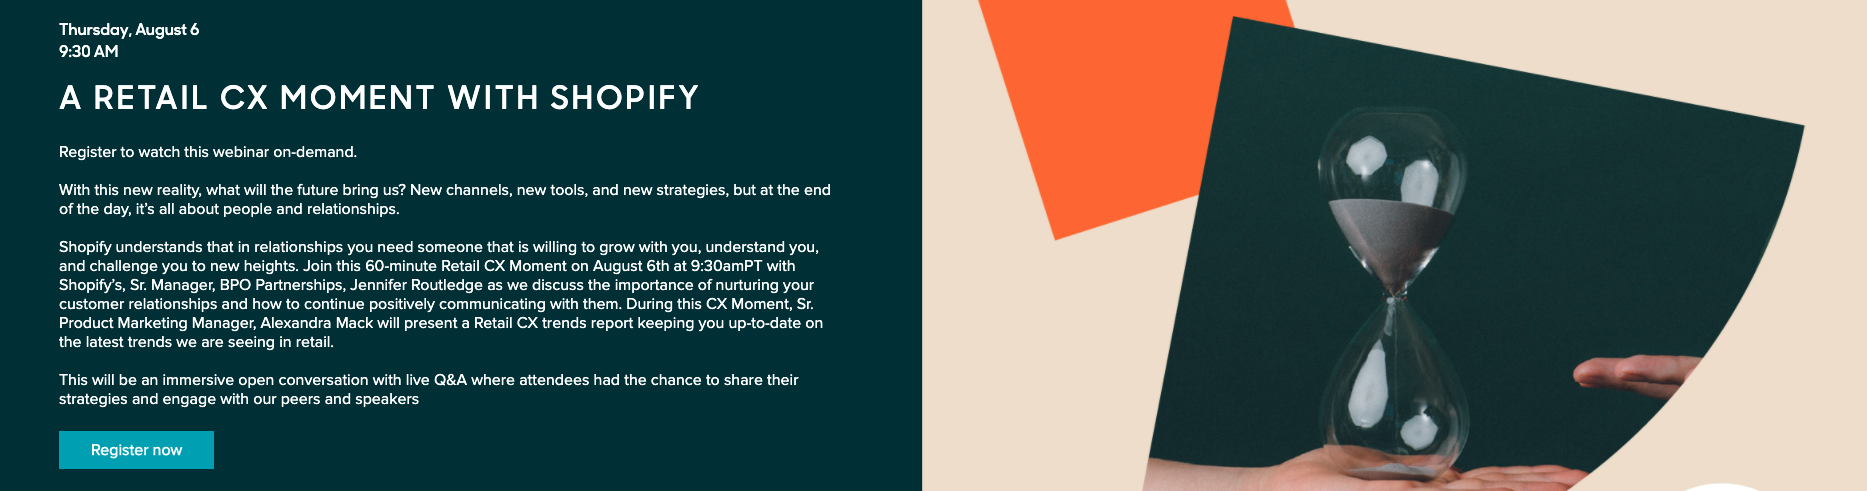 Zendesk Webinar: A Retail CX Moment with Shopify